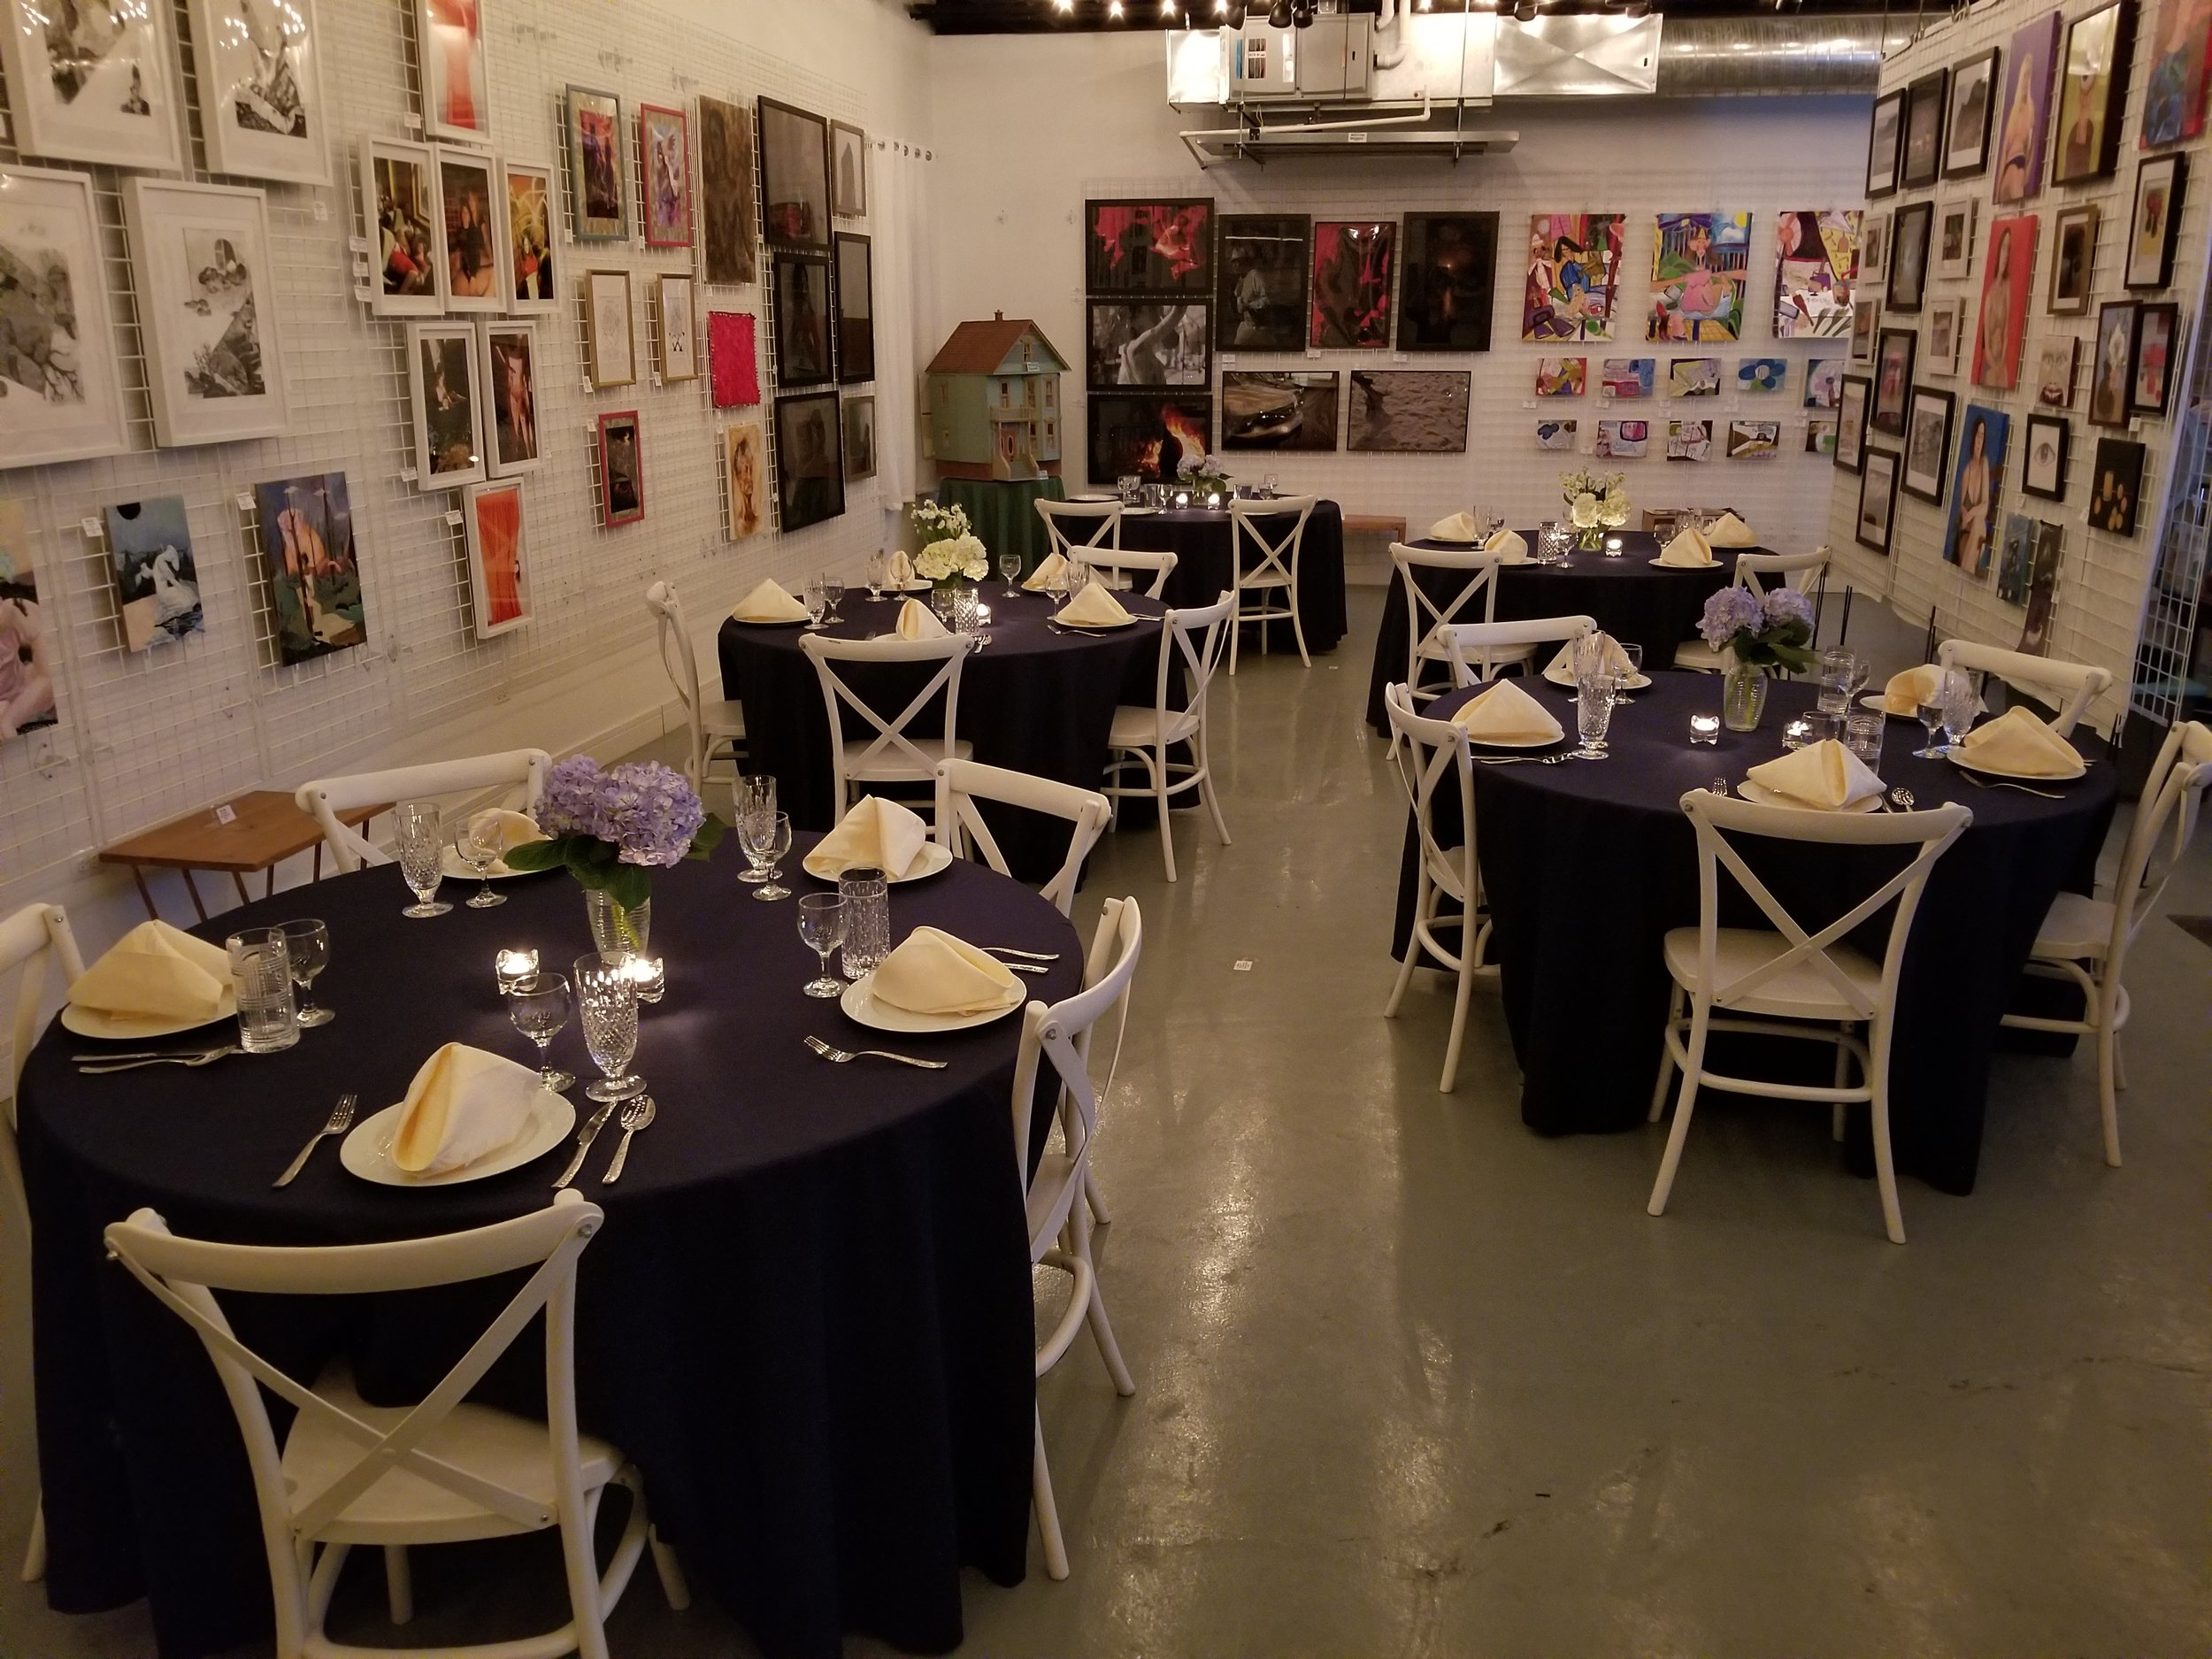 Private Events, Wedding Receptions, Cocktail Parties… We offer a variety of amenities to make your intimate event special.